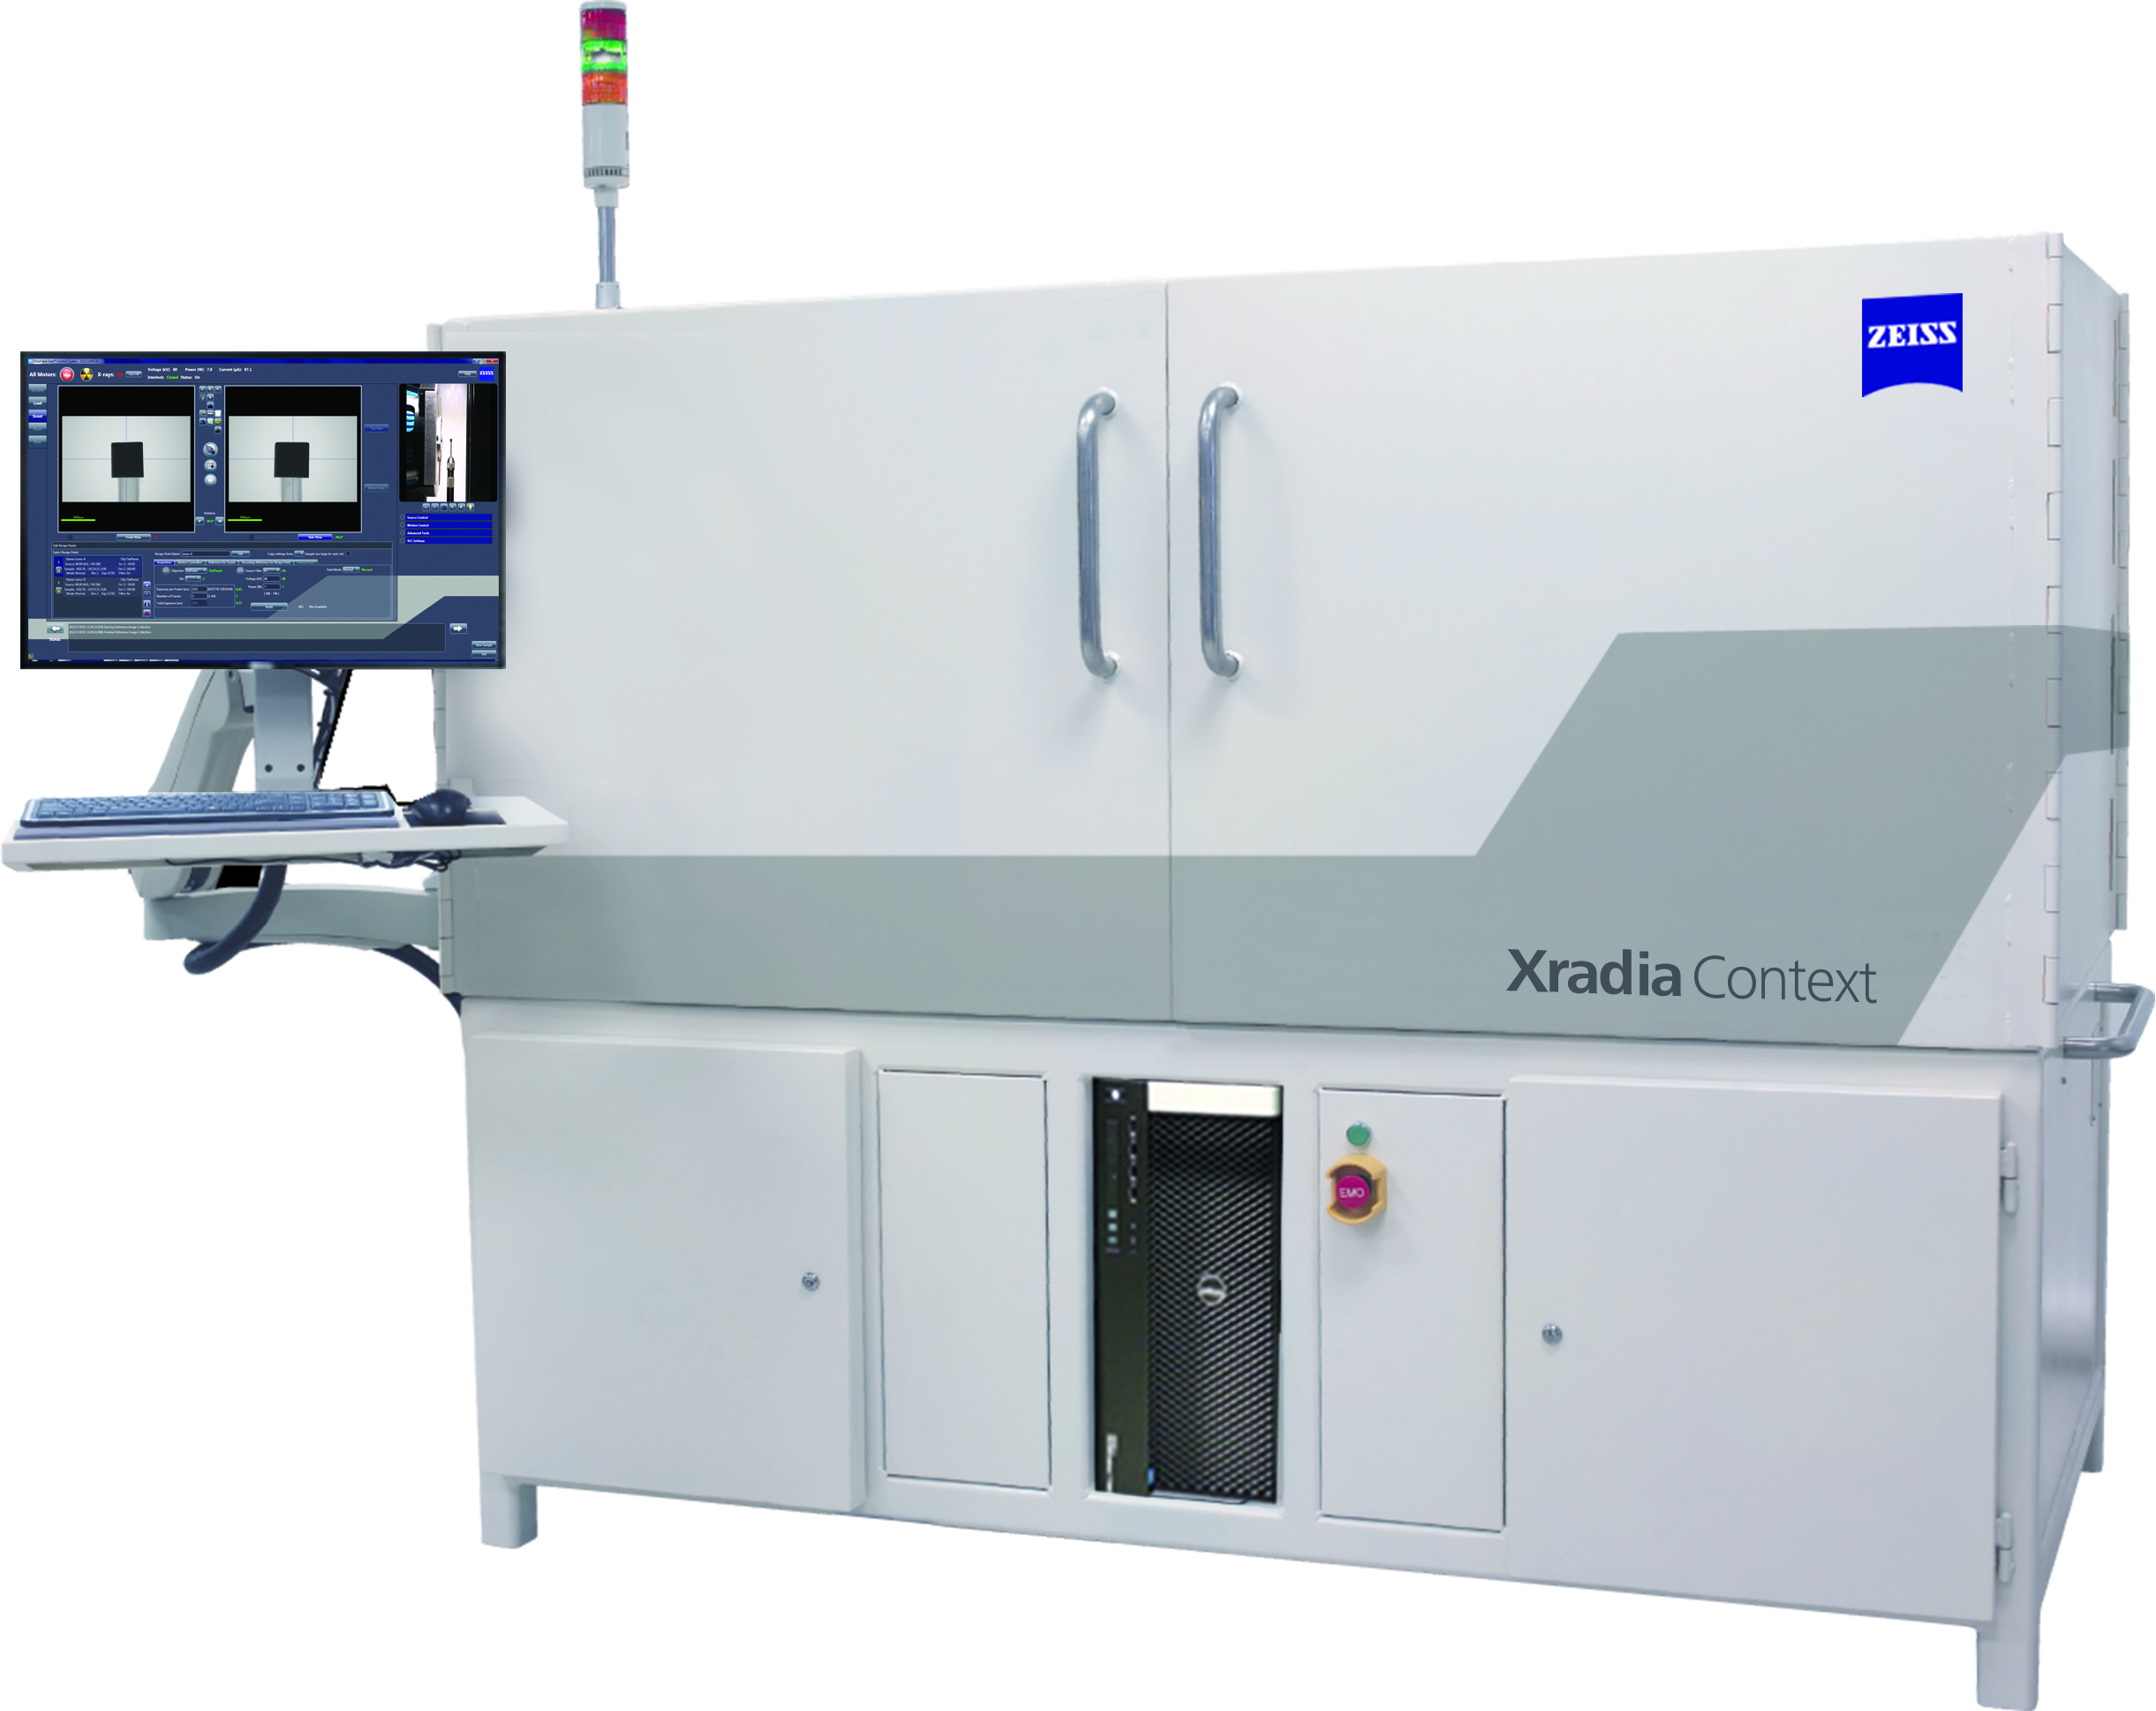 ZEISS Xradia Context microCT